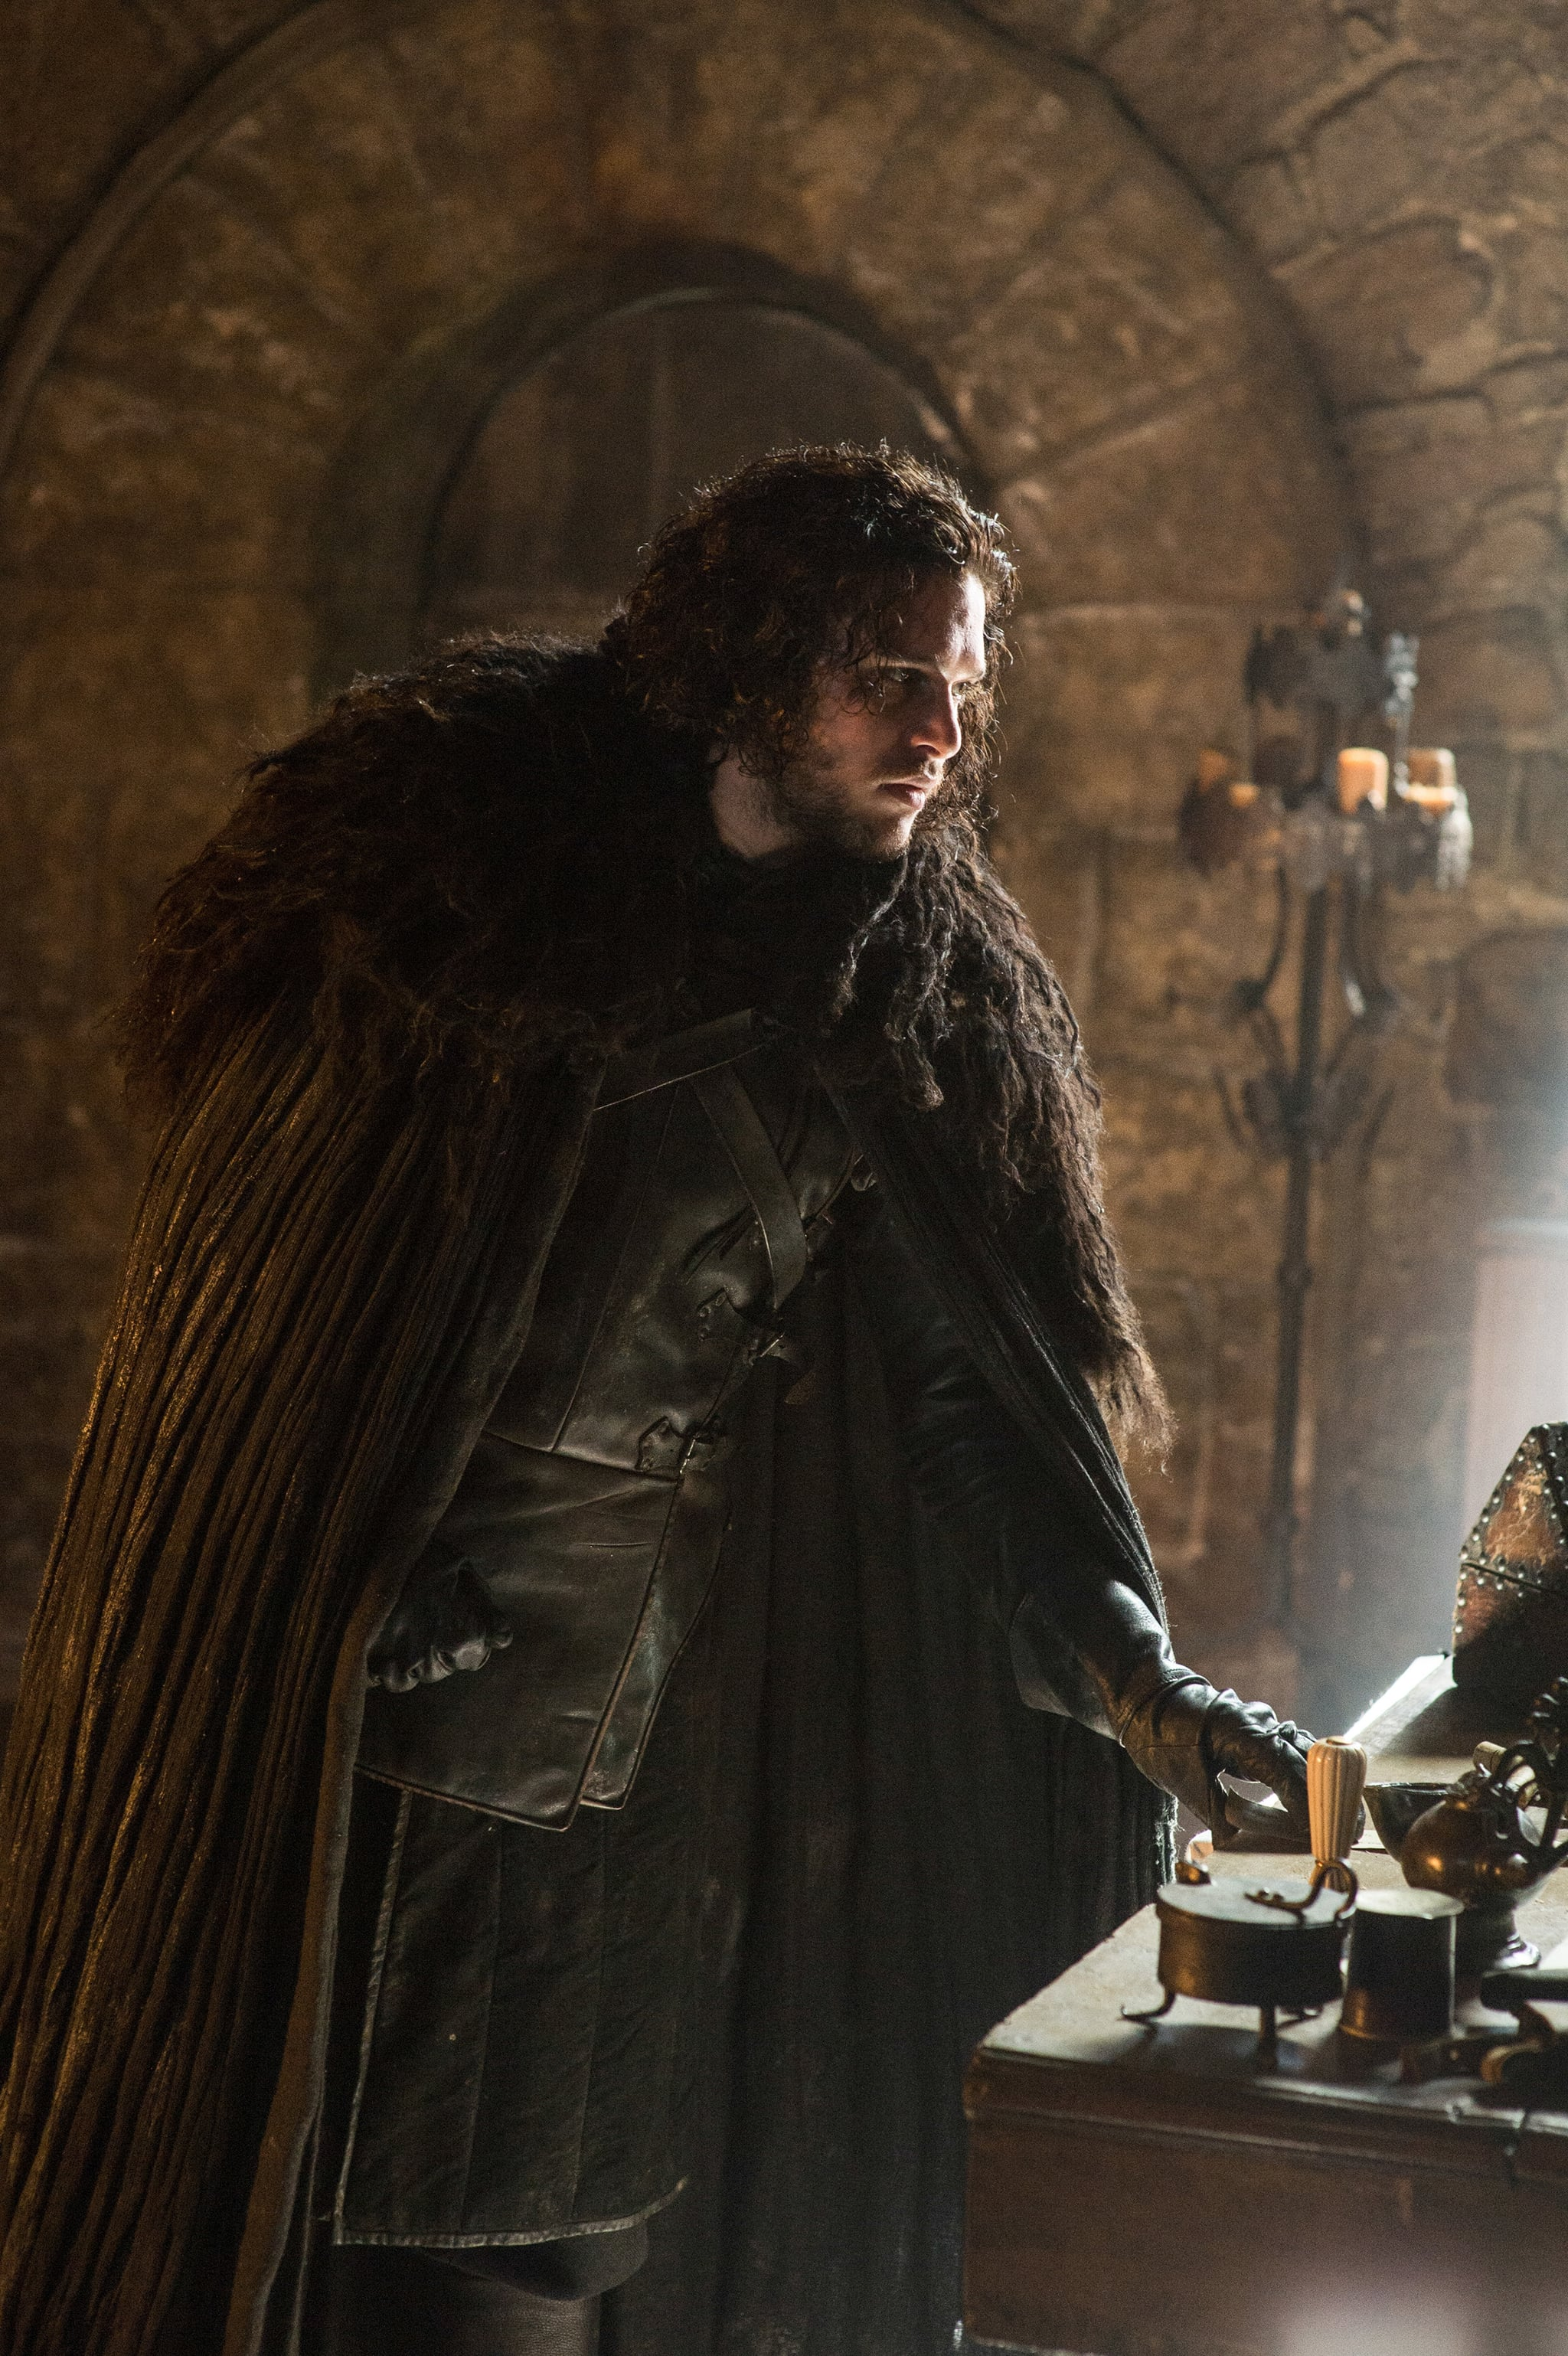 Why Doesn't Drogon Kill Jon Snow In 'Game of Thrones'?